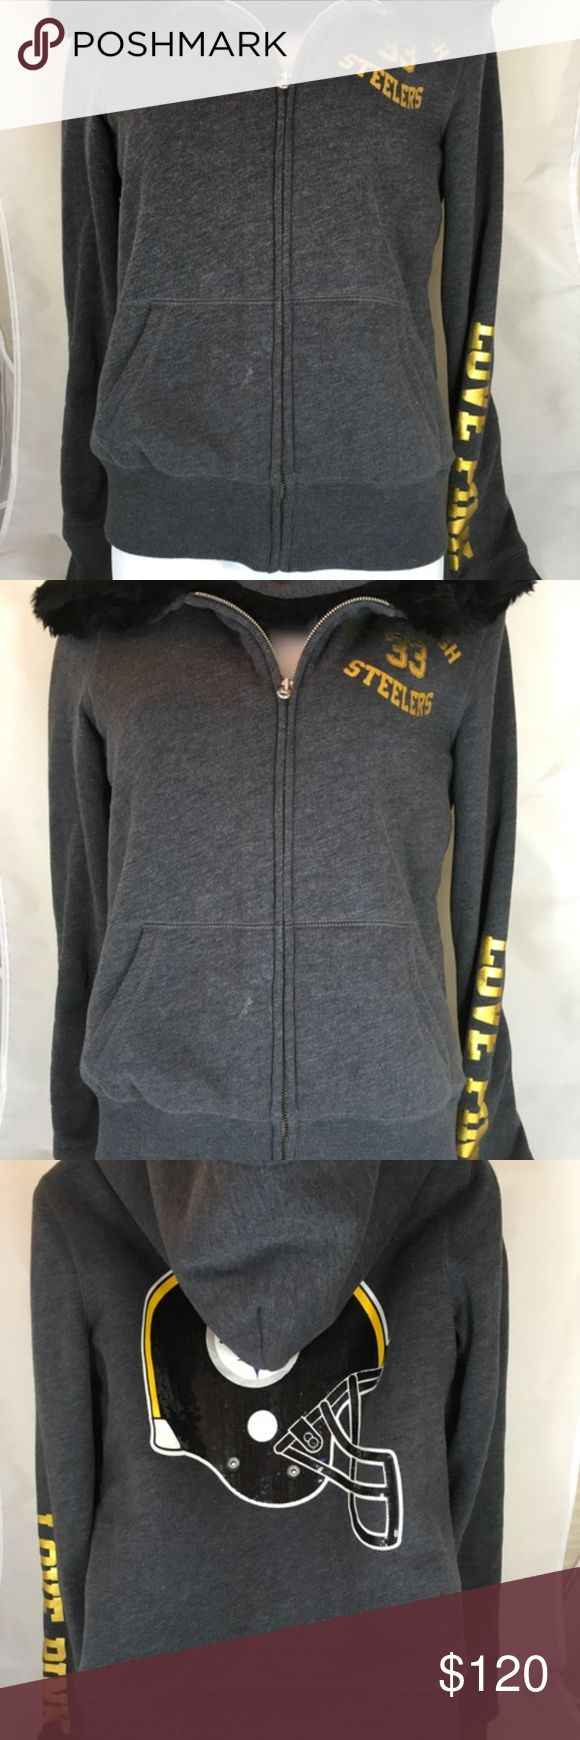 Victoria's Secret PINK NFL Bling FUR Hoodie Victoria's Secret PINK NFL Collection Pittsburgh Steelers Faux-Fur Lined Bling Zip Hoodie in Grey Size Small Limited Edition!! Only worn a few times, in Like New Condition!! Perfect for Playoffs!! PINK Victoria's Secret Tops Sweatshirts & Hoodies